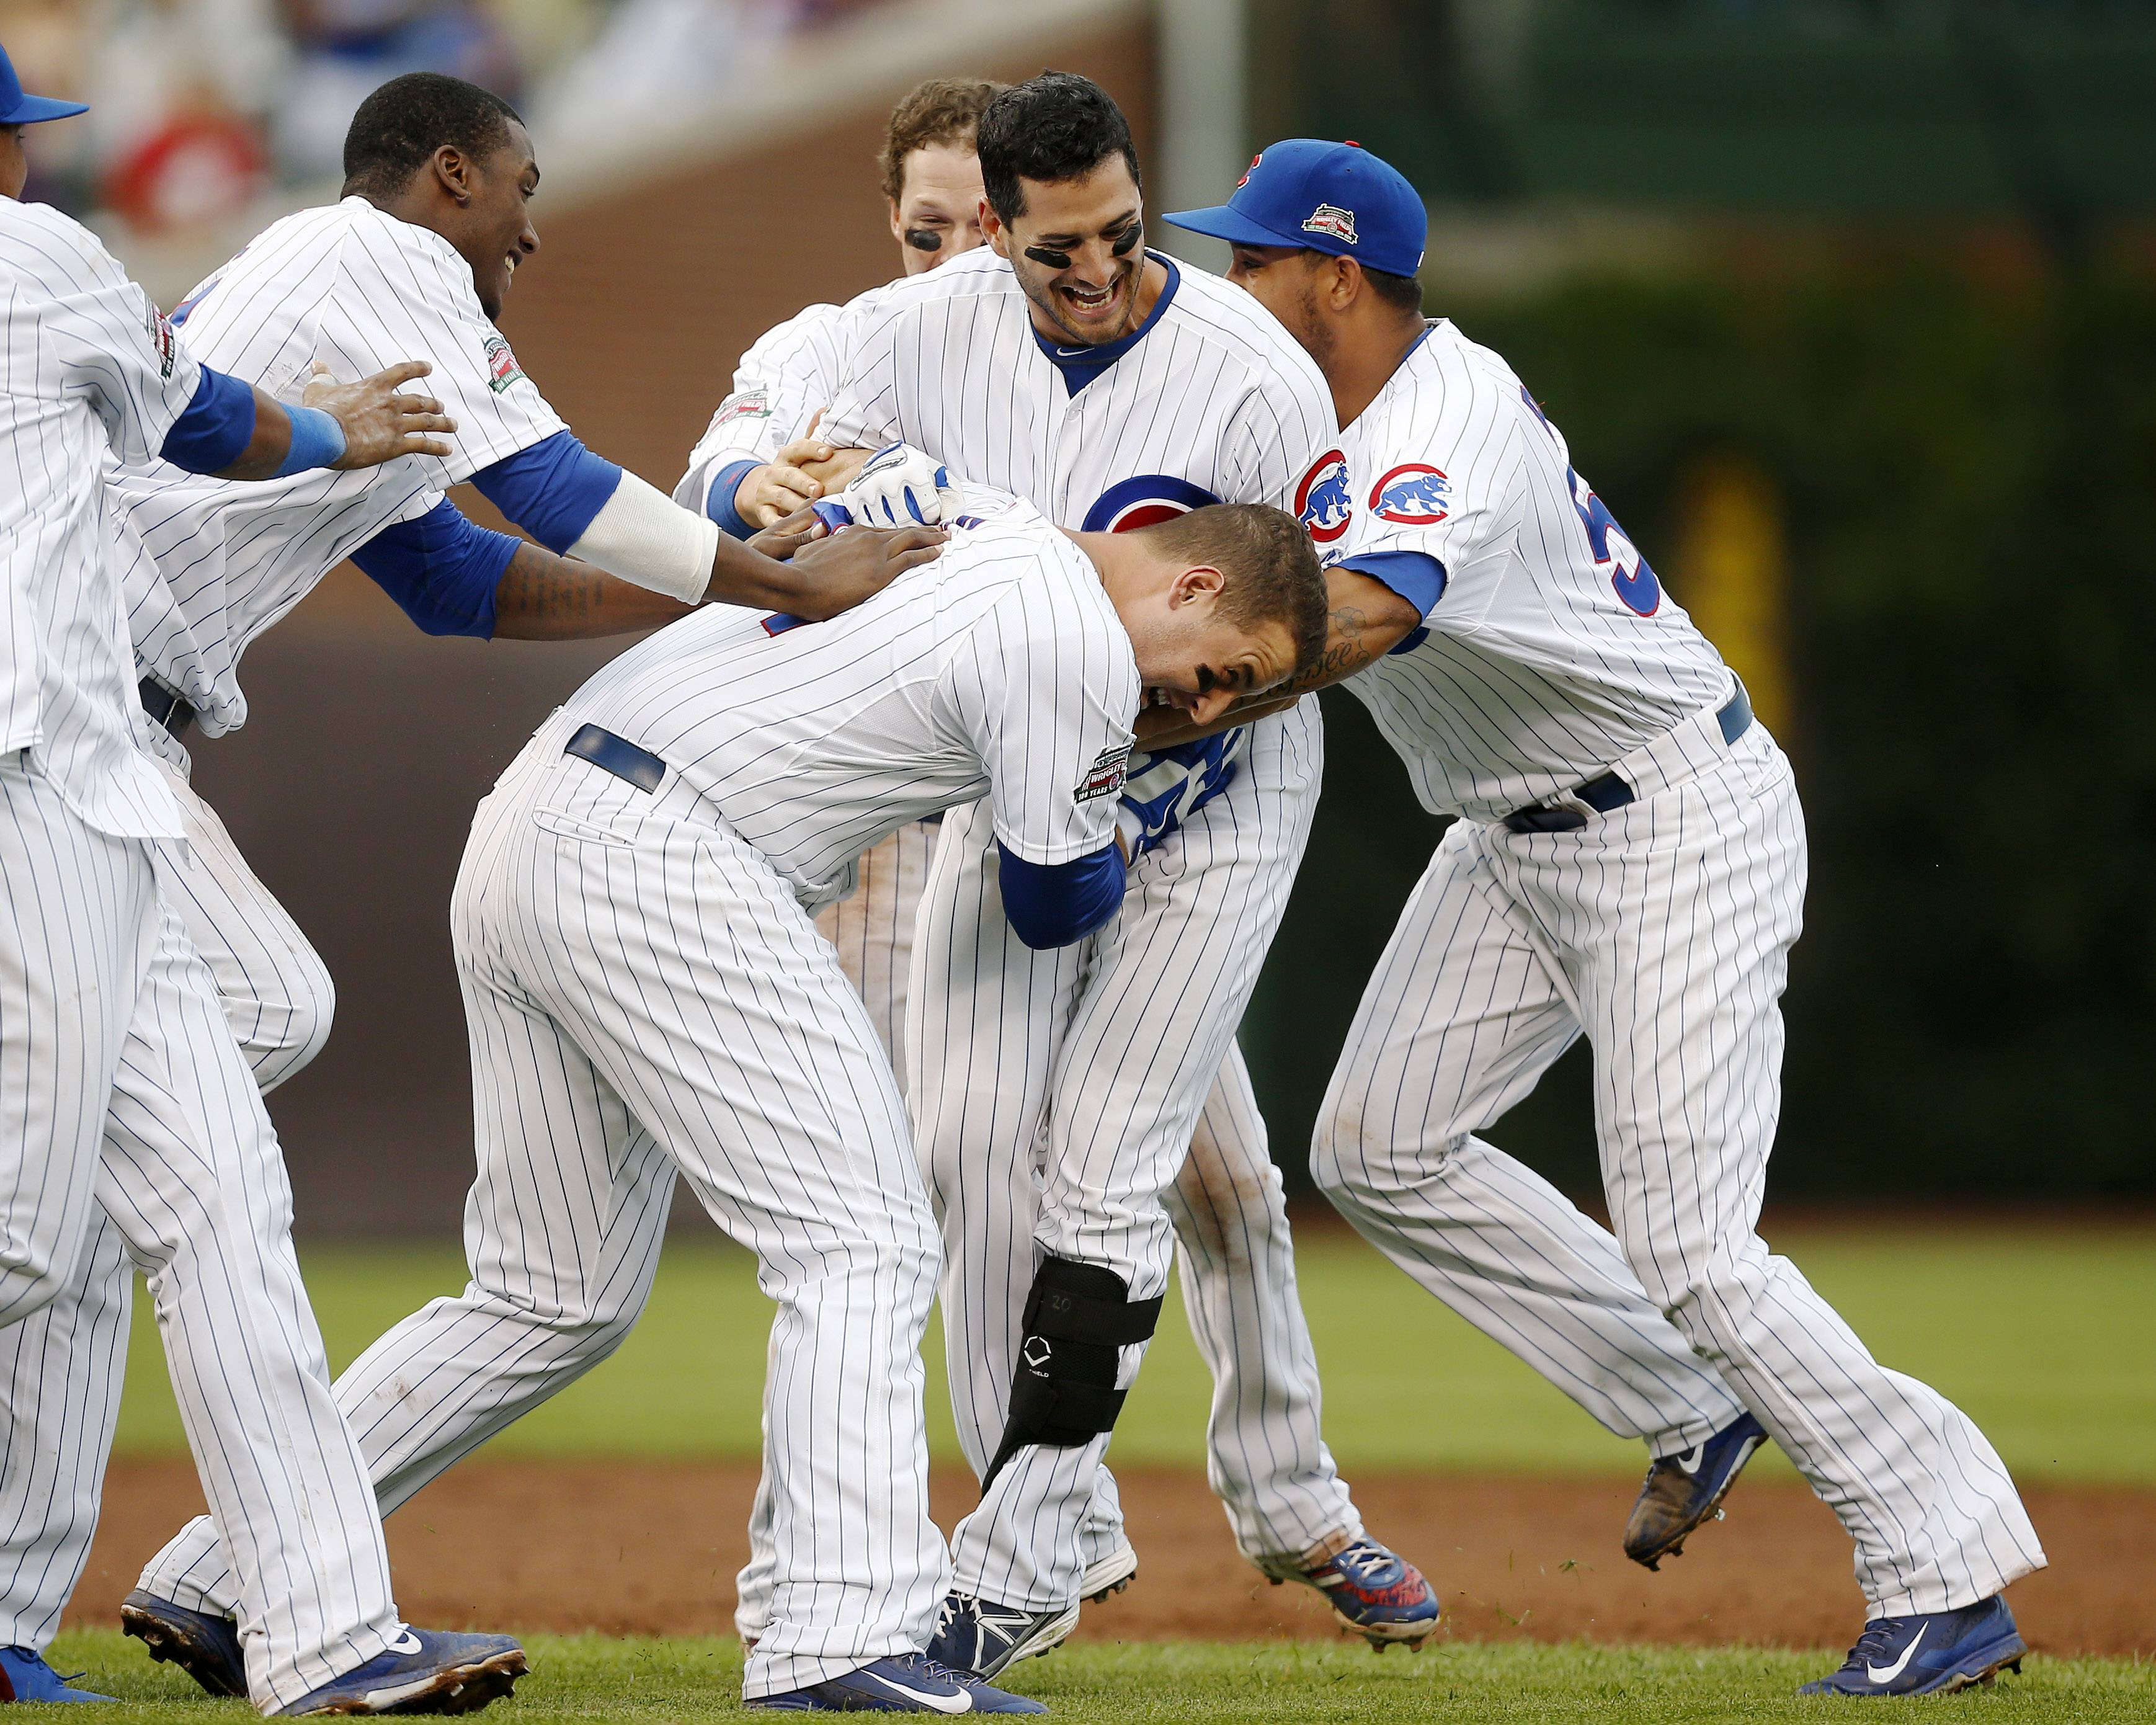 Cubs show some life with back-to-back wins